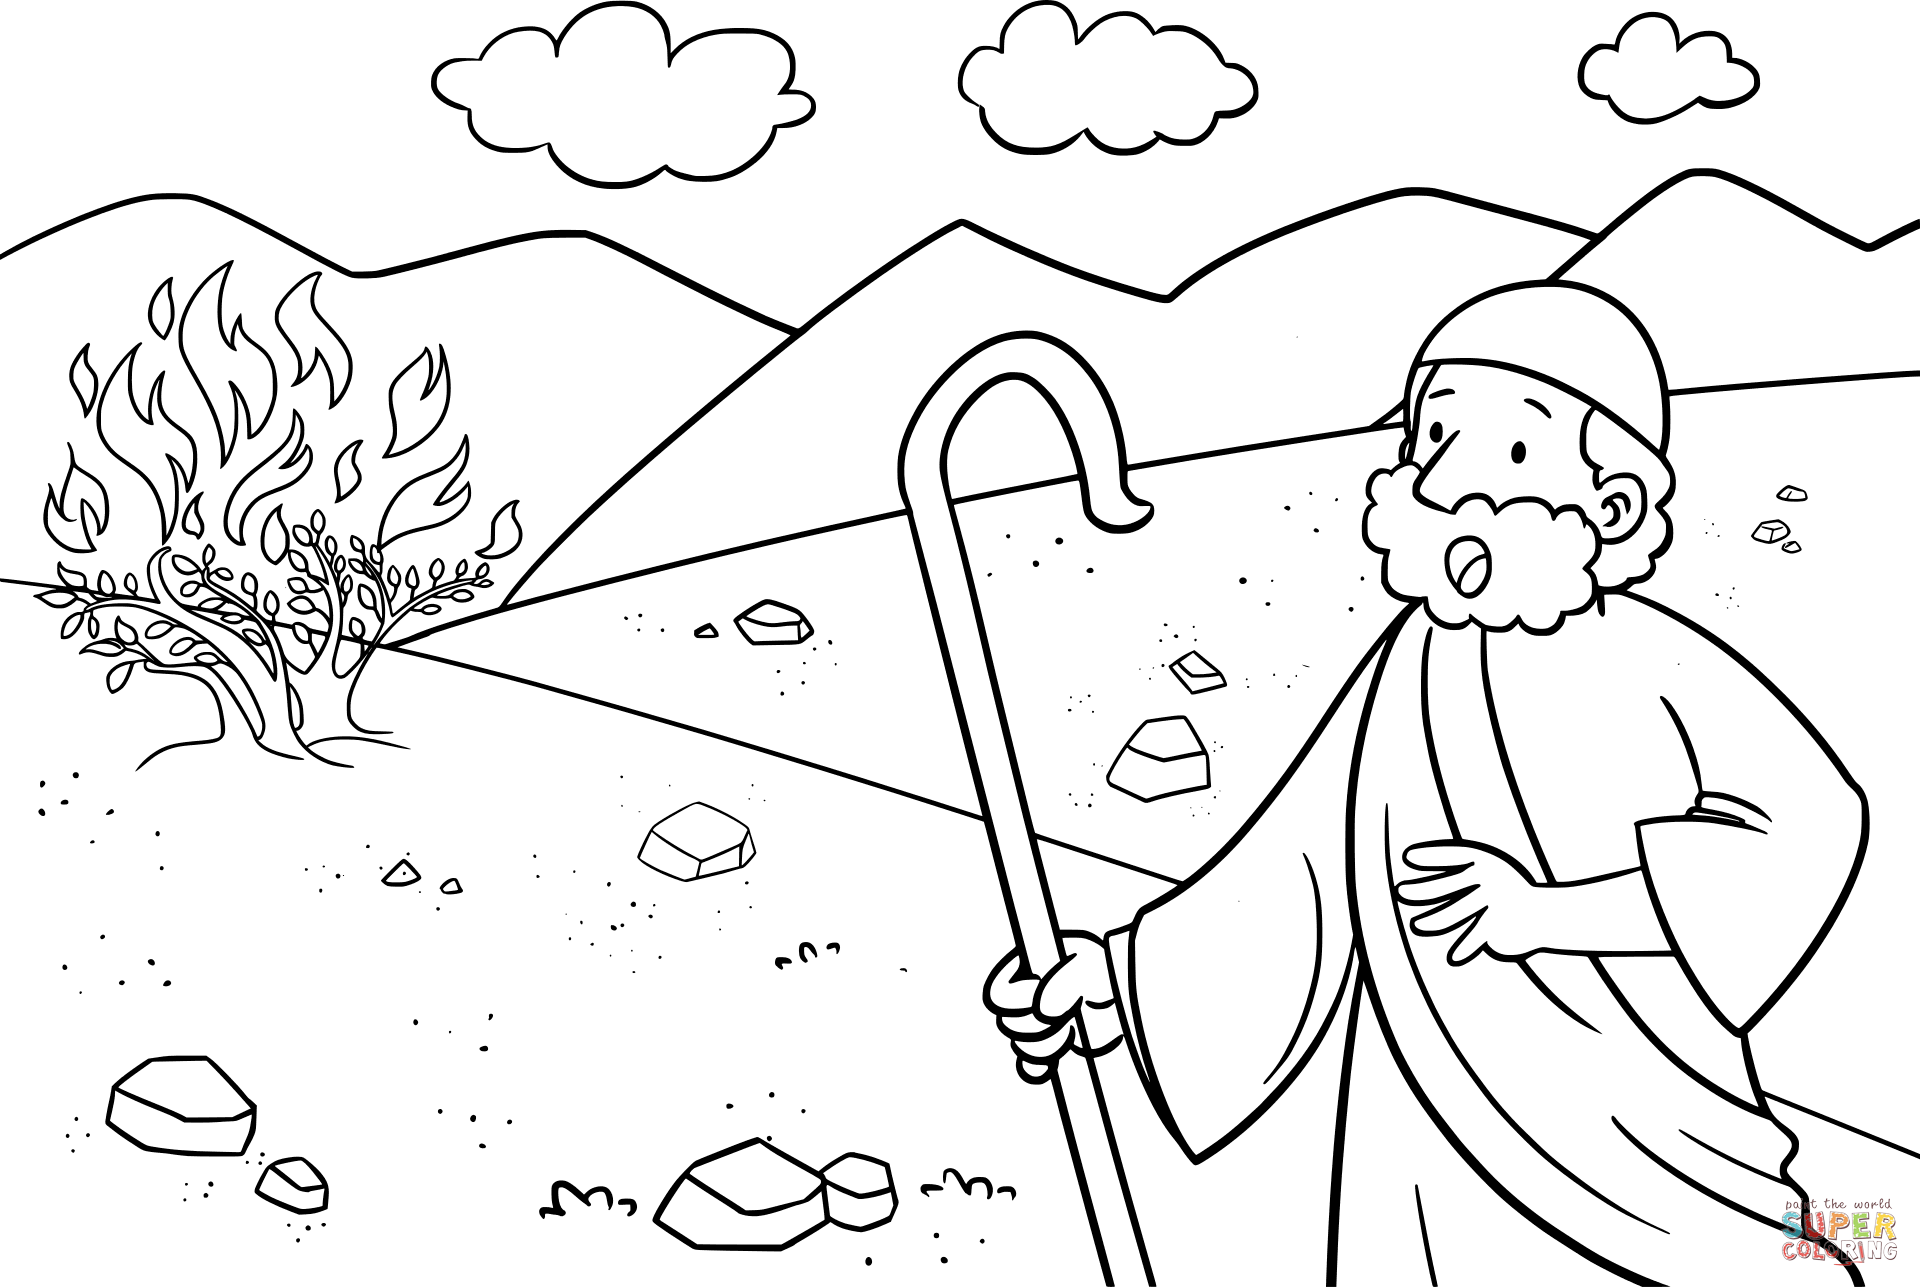 Egyptian Princess Moses Coloring Page The Prince Of Egypt Coloring